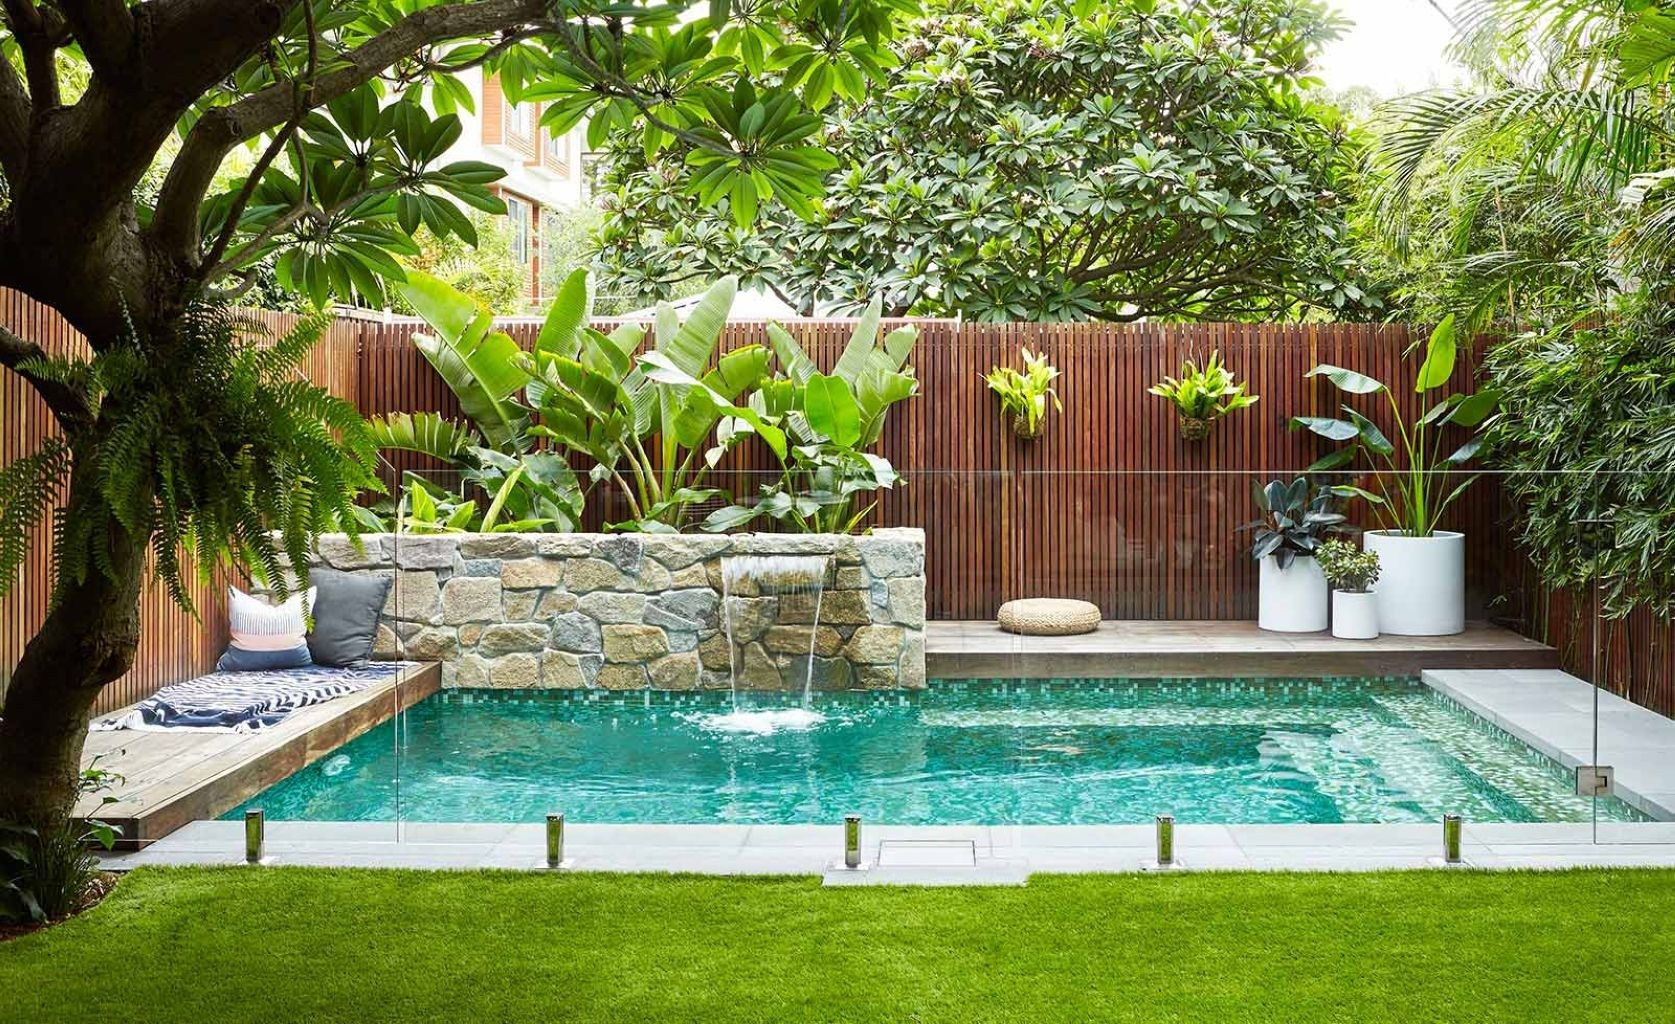 Small Pool Ideas Find Images Of House Interior with regard to 13 Genius Ways How to Upgrade Small Pool Backyard Ideas